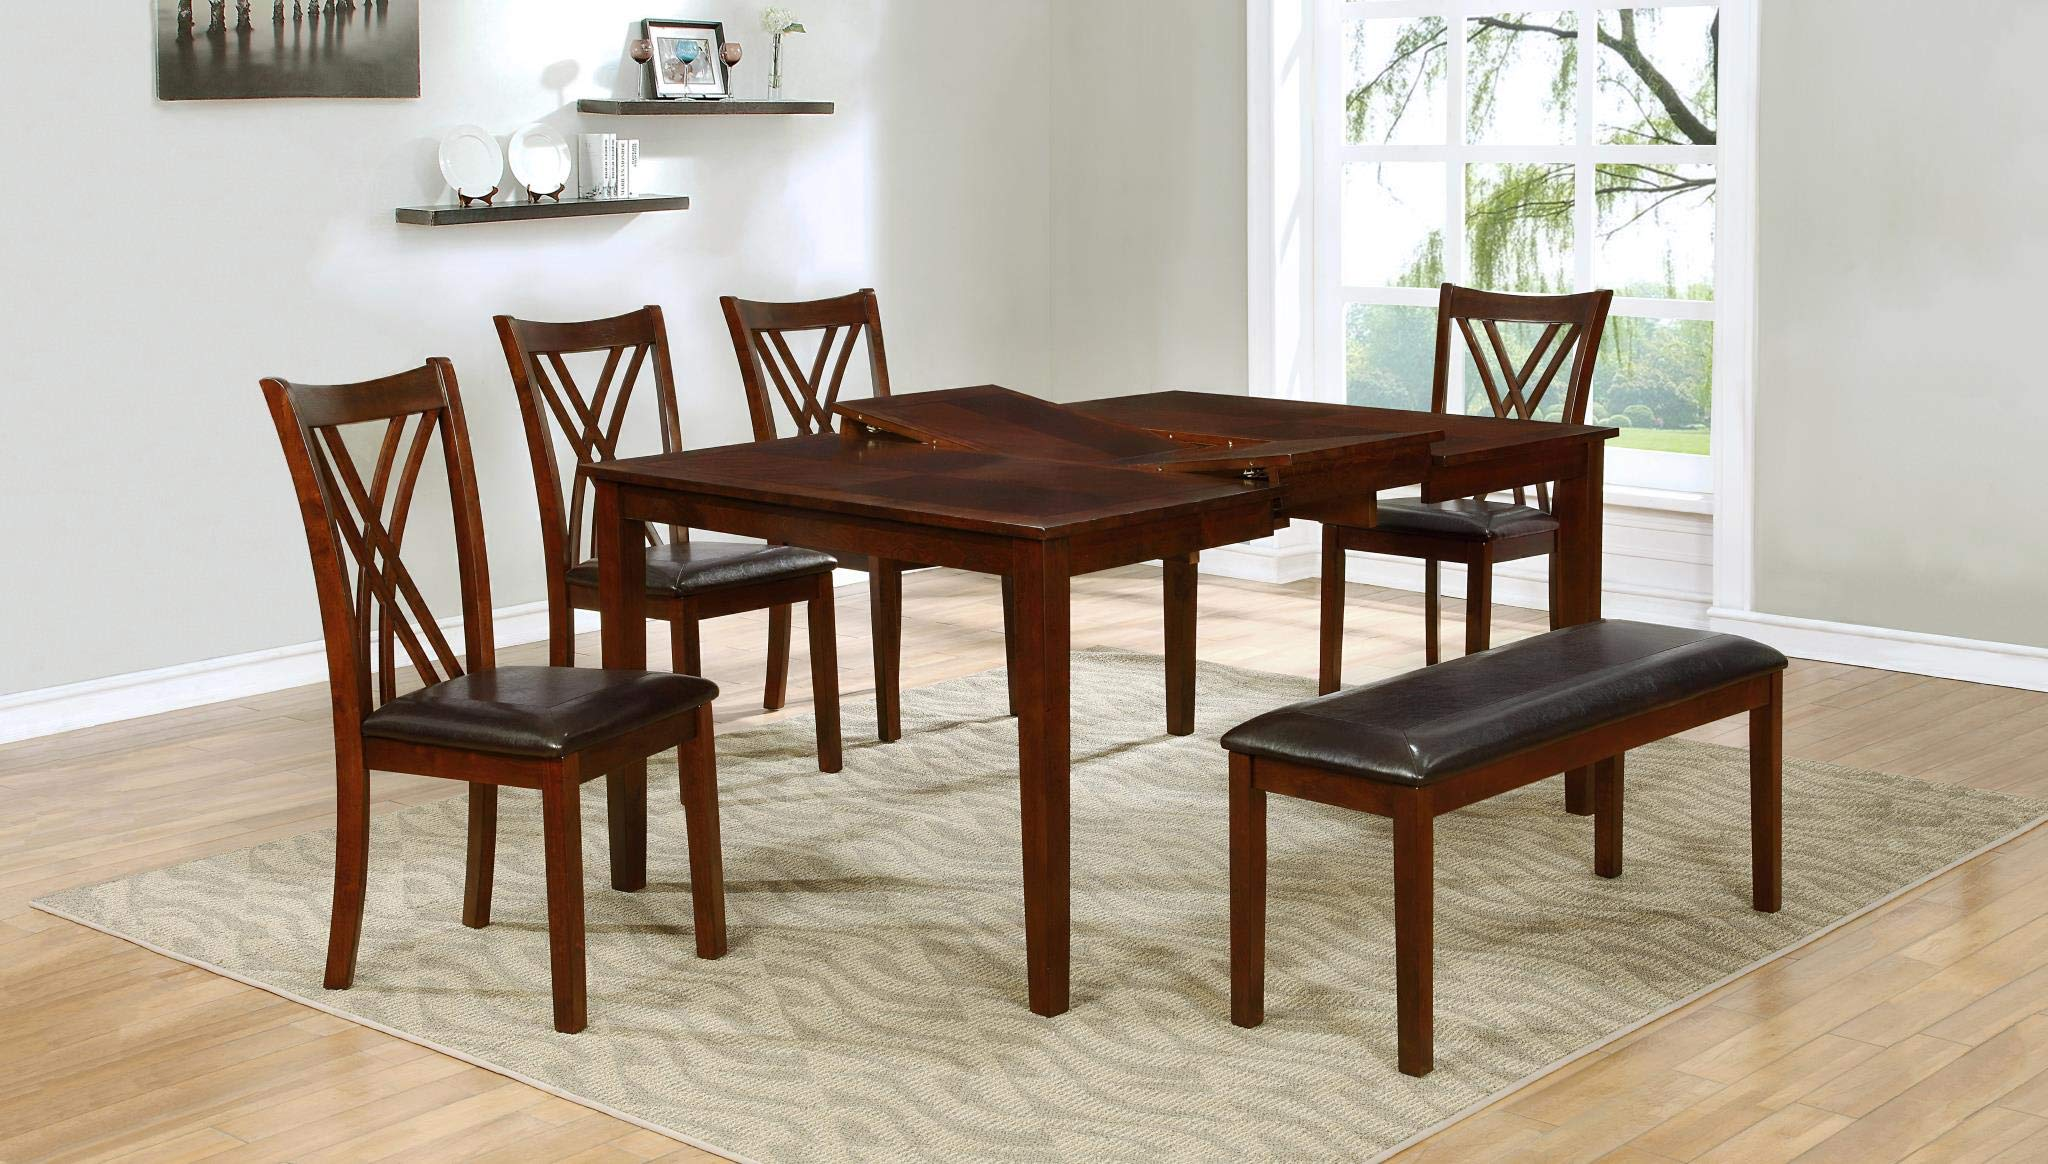 GTU Furniture 6 PC Cherry Wood Dining Set, Expand Top Table, 4 Chairs and a Bench, Solid Wood